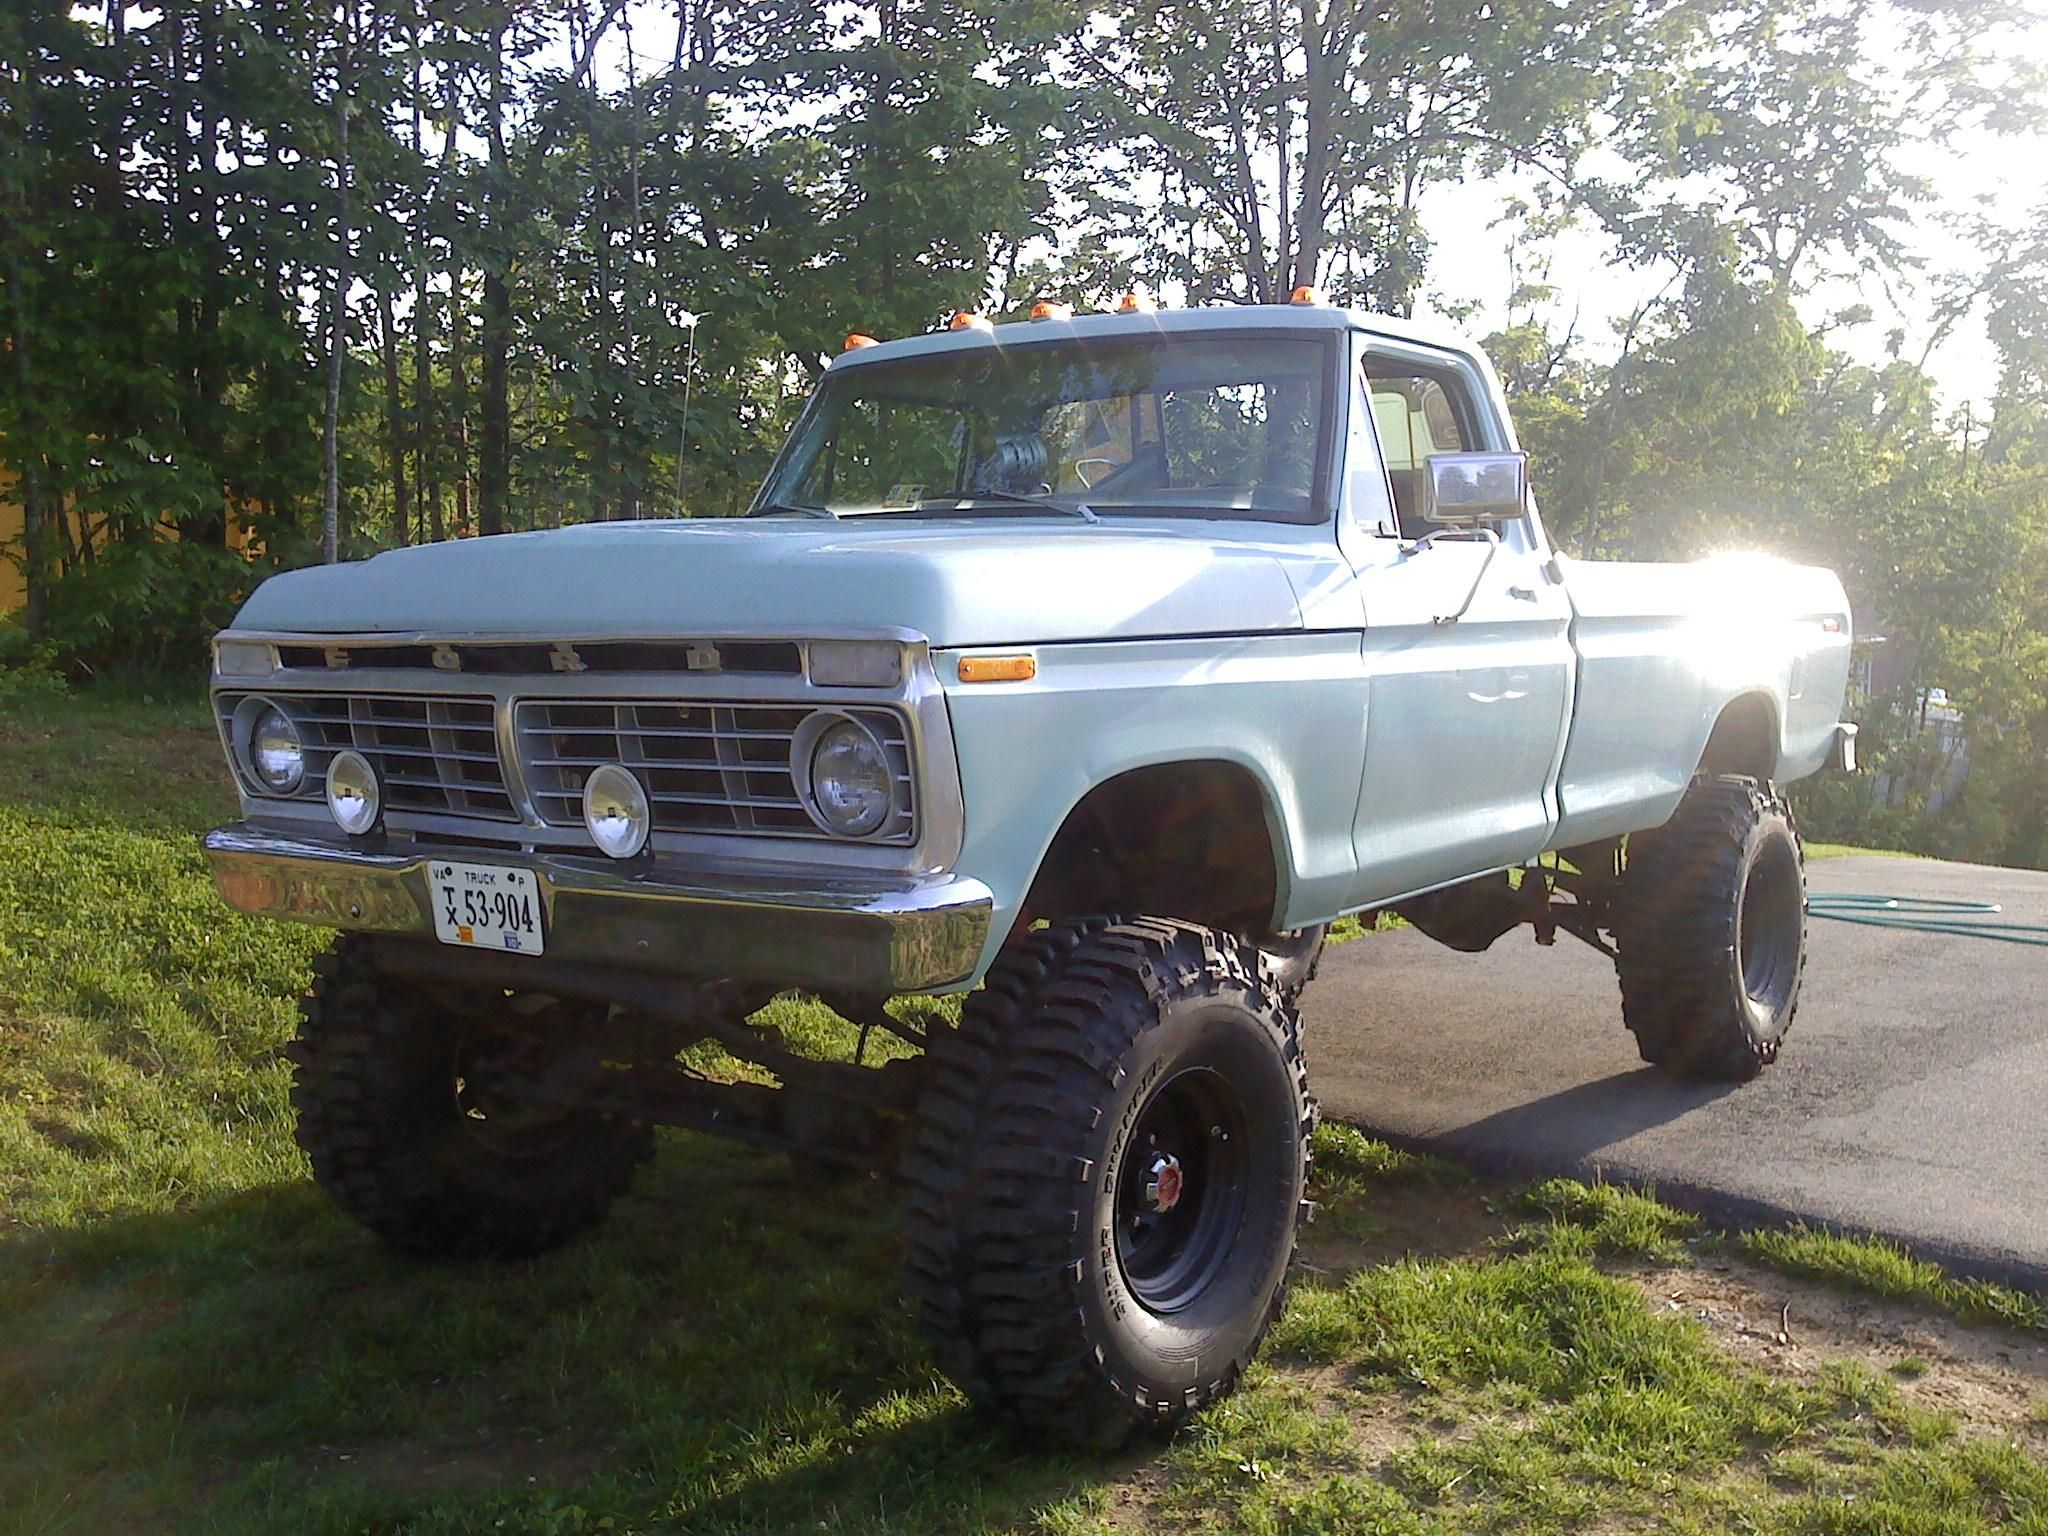 73 highboy f 250 my style 4x4 s ford trucks ford trucks 74 F250 Highboy 73 highboy f 250